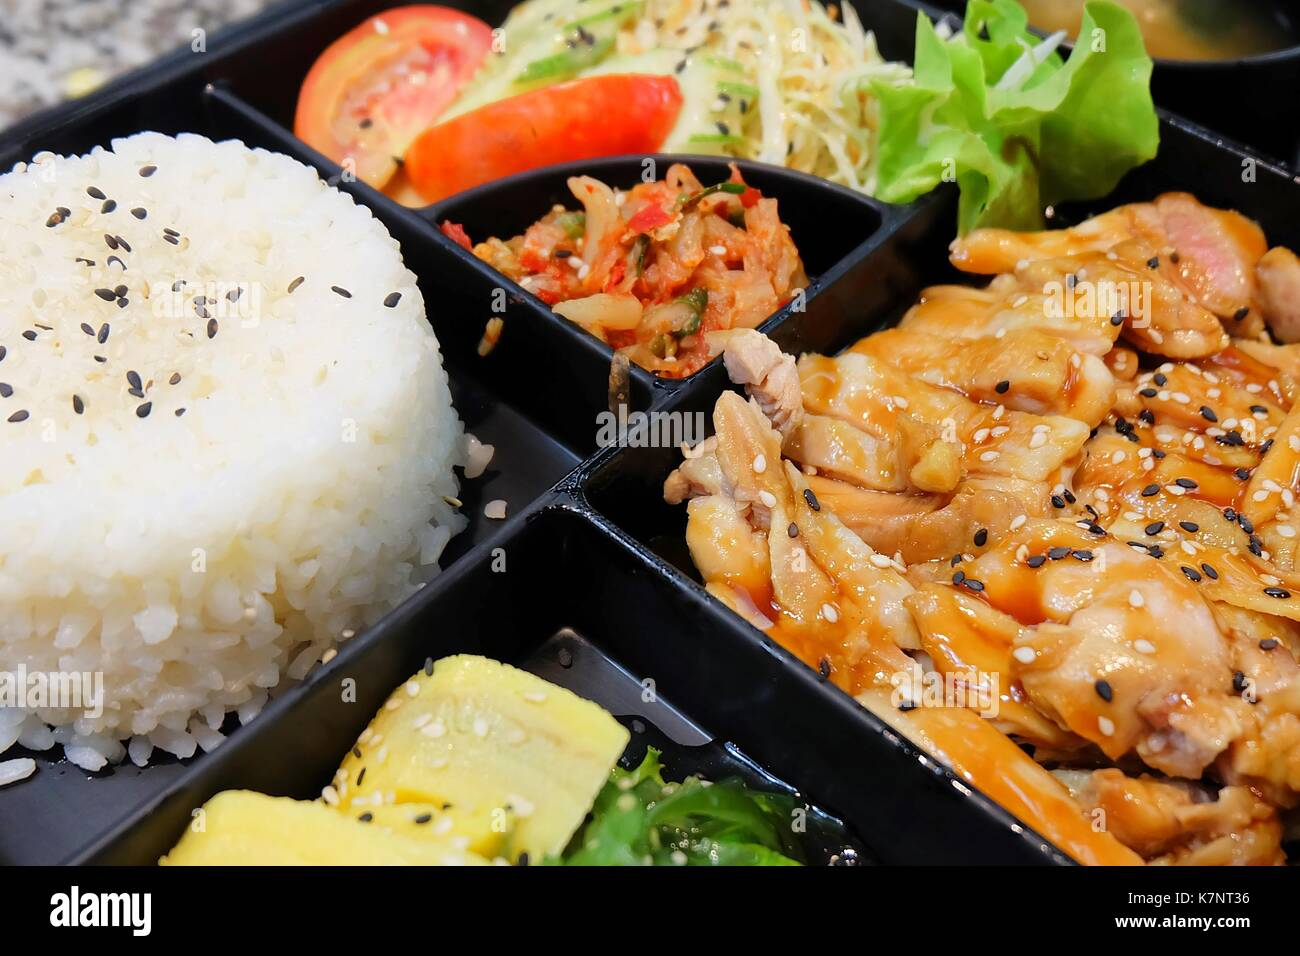 Bento box japan stock photos bento box japan stock for Ancient japanese cuisine